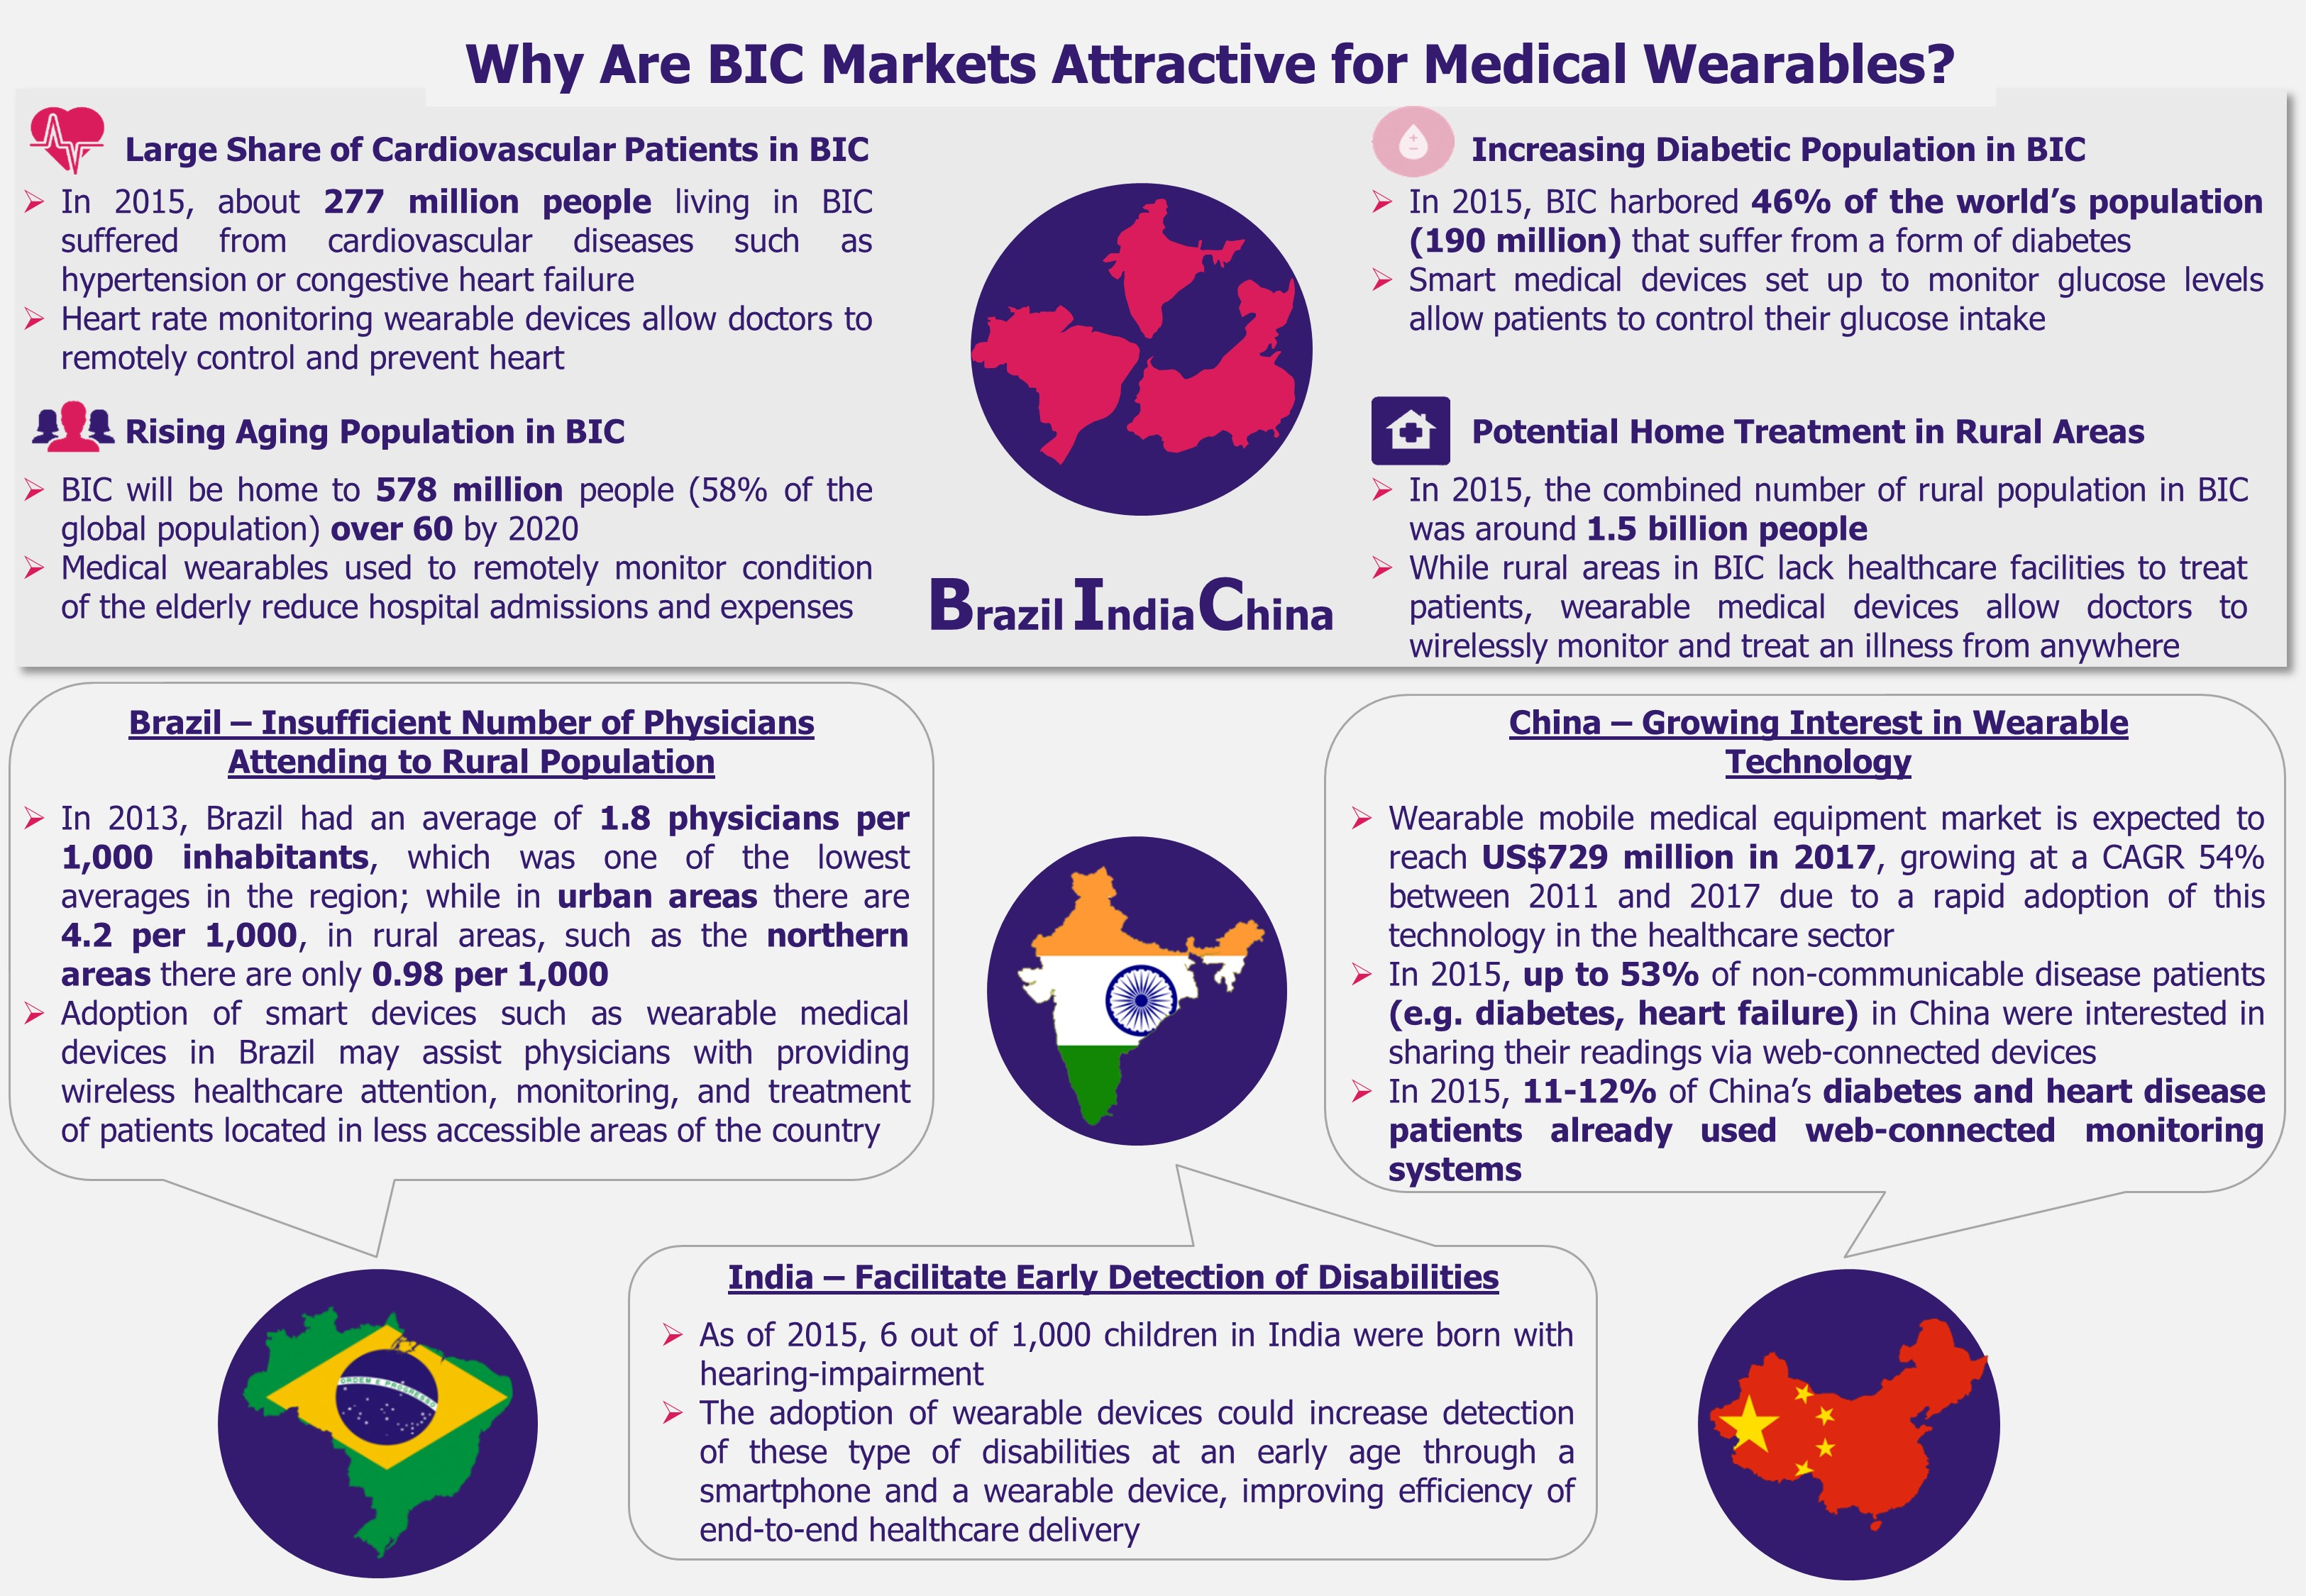 Wearable Medical Devices in India, Brazil, and China - BIC Markets Are Attractive